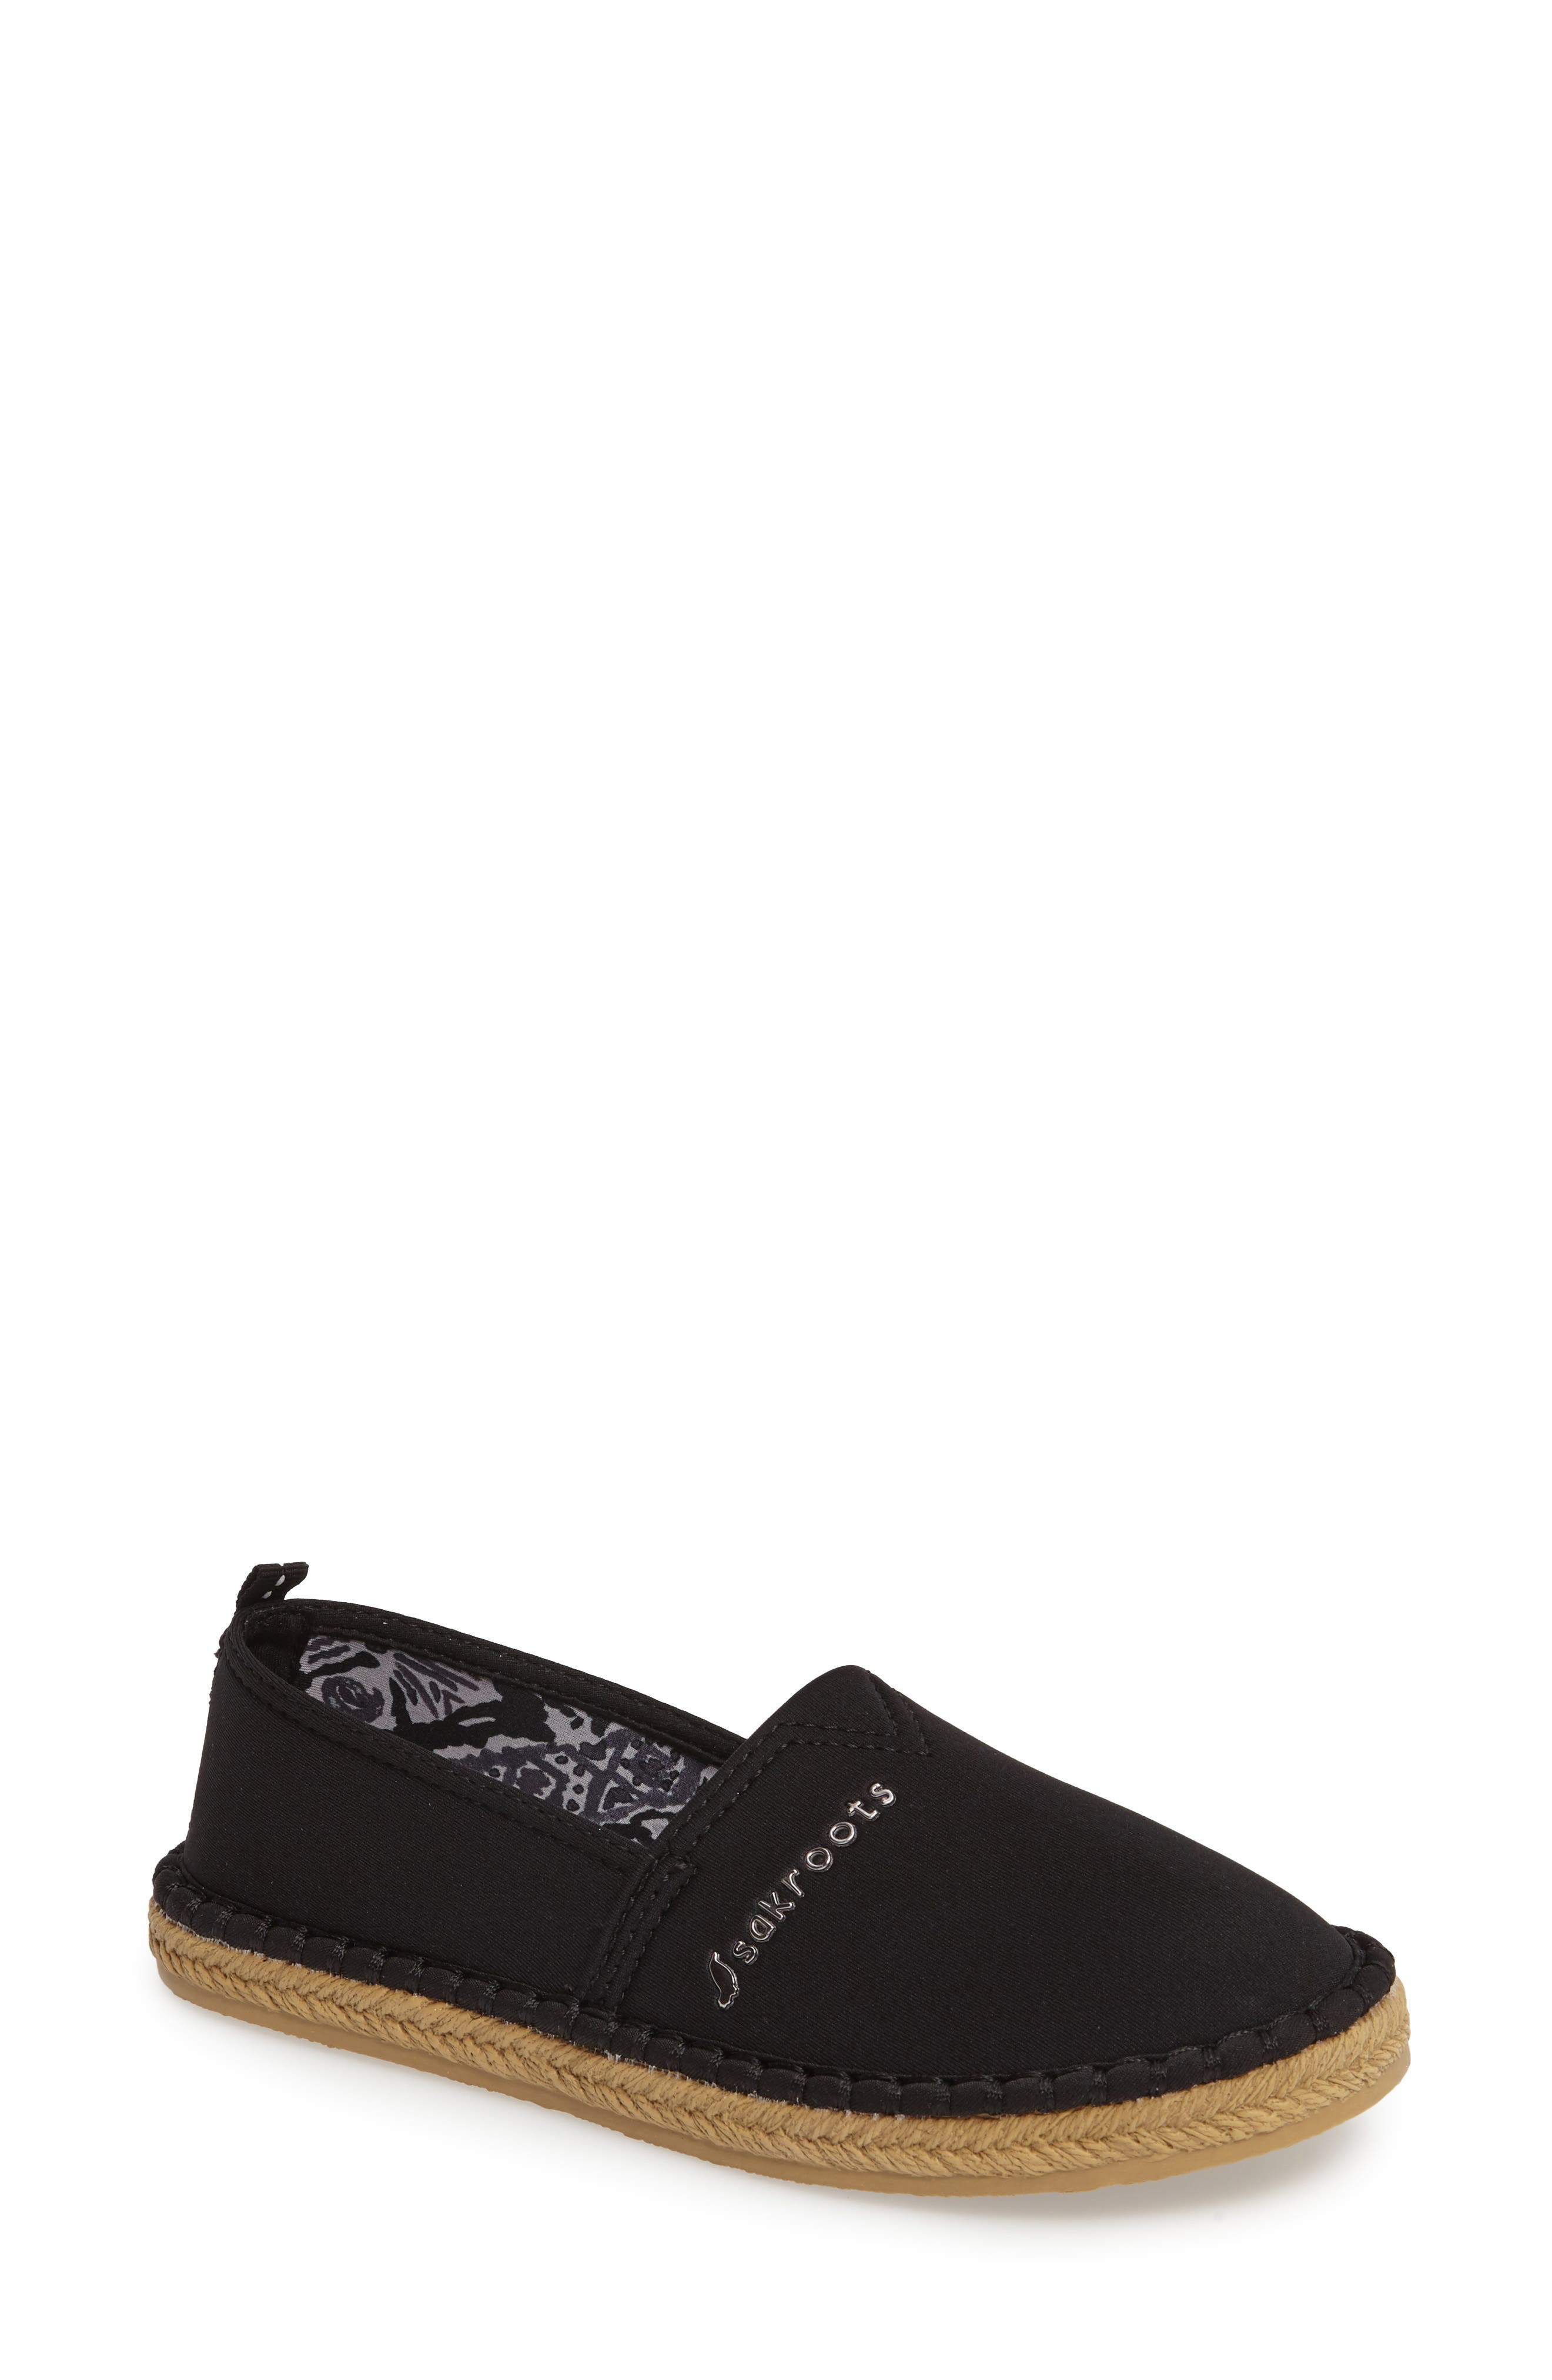 Eton Espadrille Flat,                         Main,                         color,